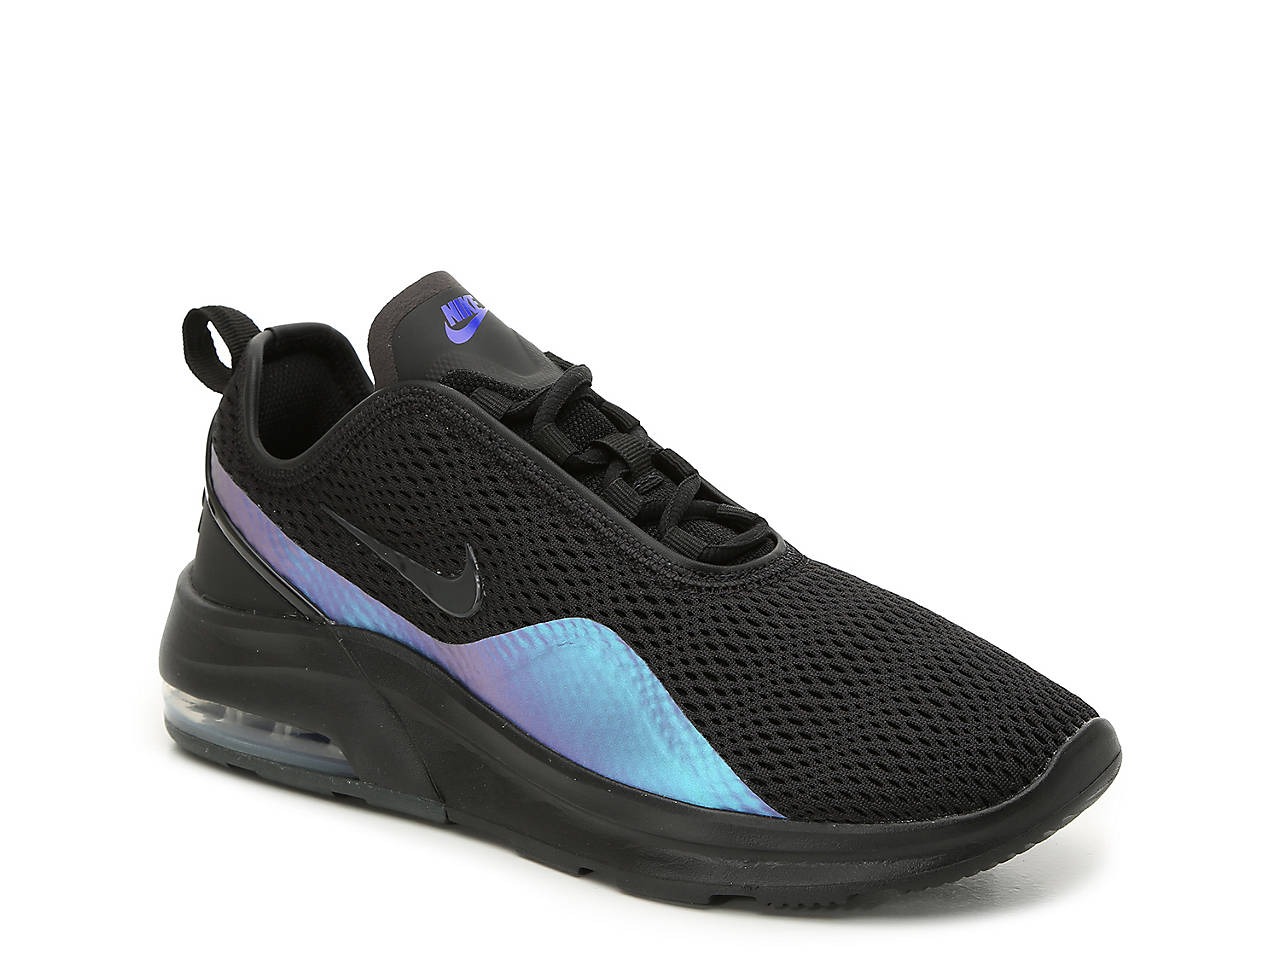 ae84f77223317 Nike Air Max Motion 2 Sneaker - Women's Women's Shoes | DSW